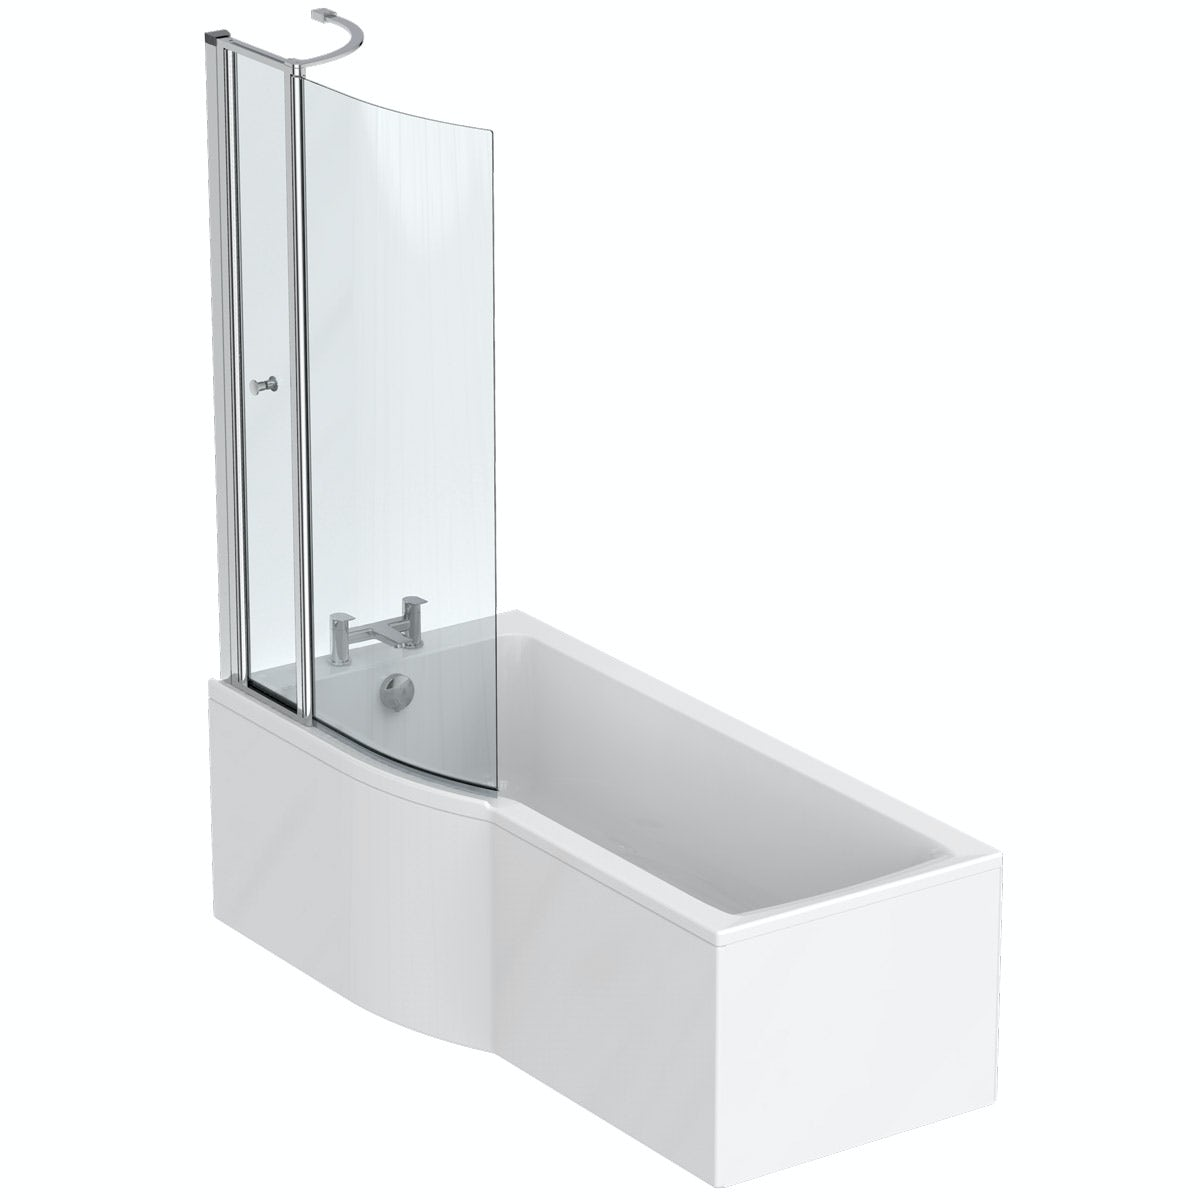 Ideal Standard Concept Air Idealform left hand shower bath 1700 x 800